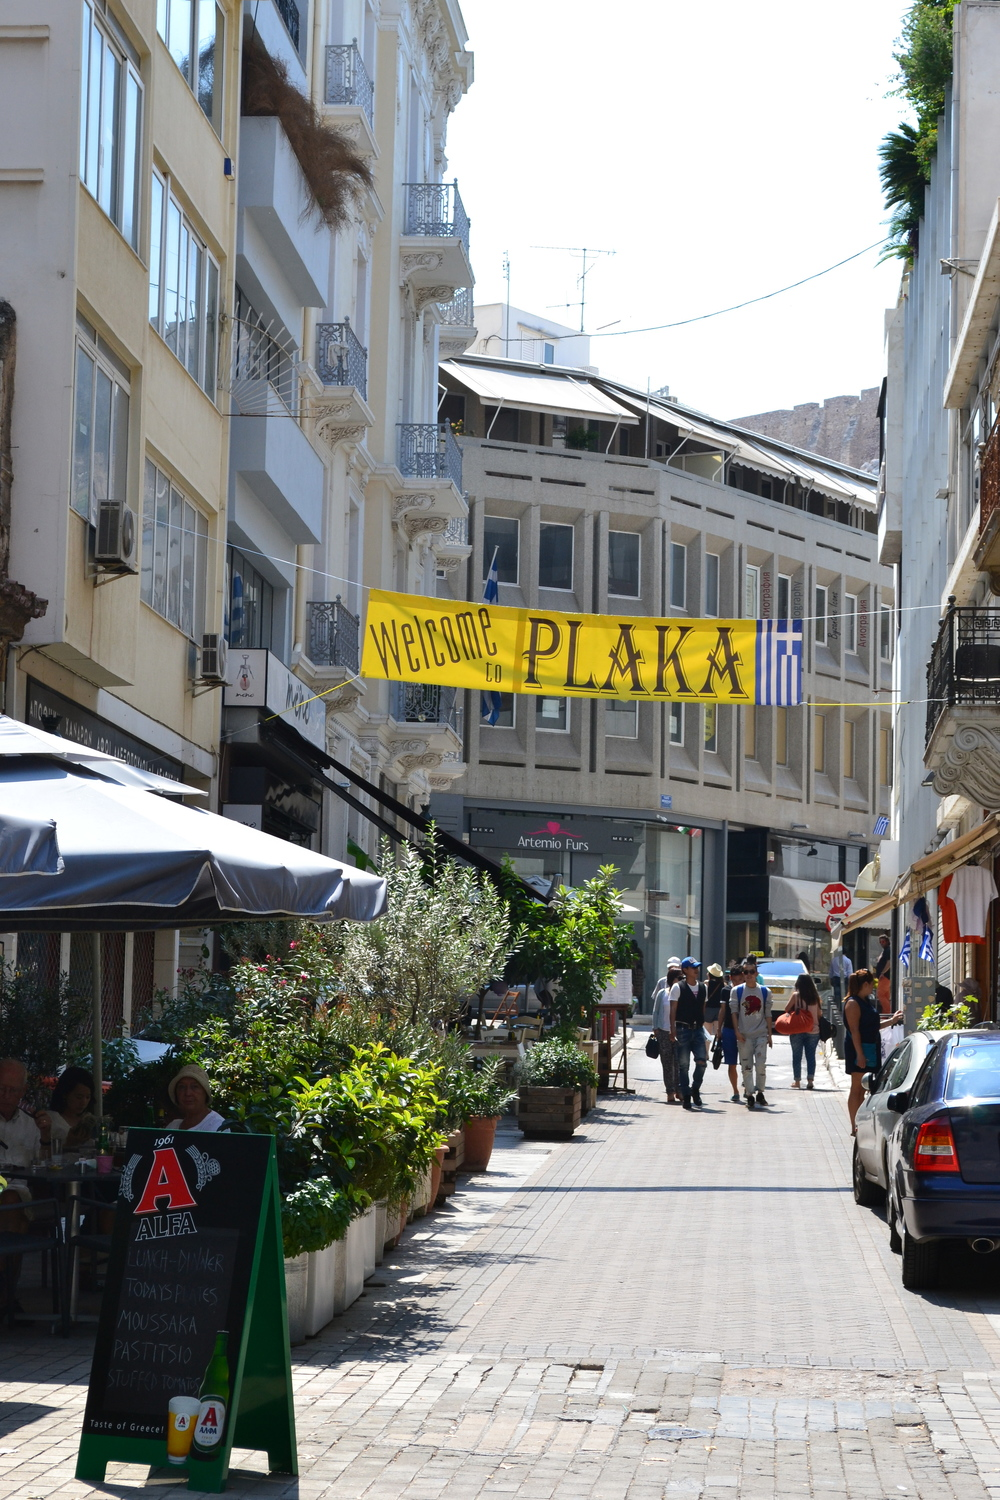 Plaka District